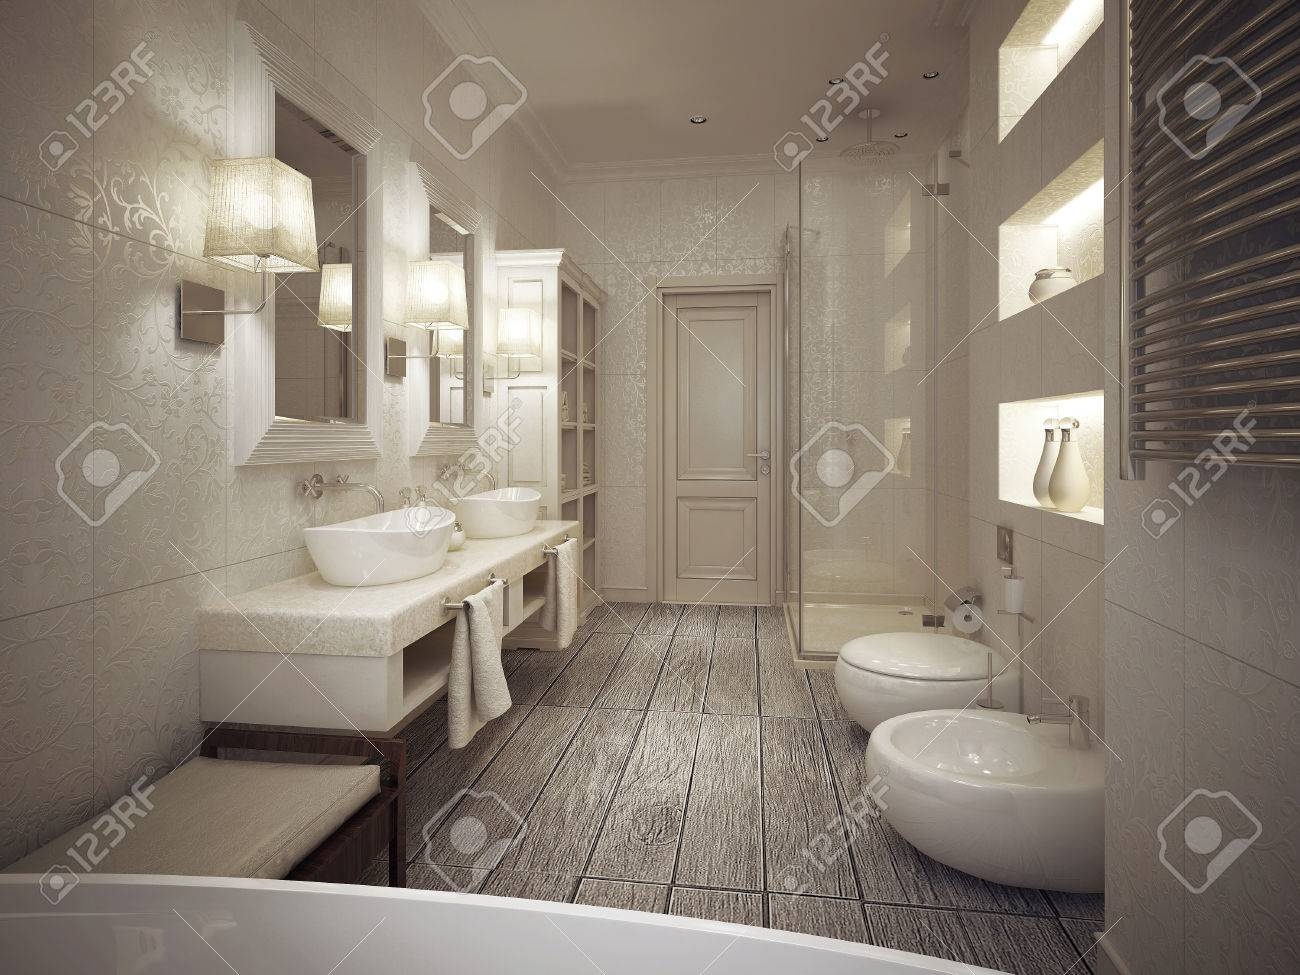 The Bathroom Is A Classic Style With Patterned Tiles In Beige ...